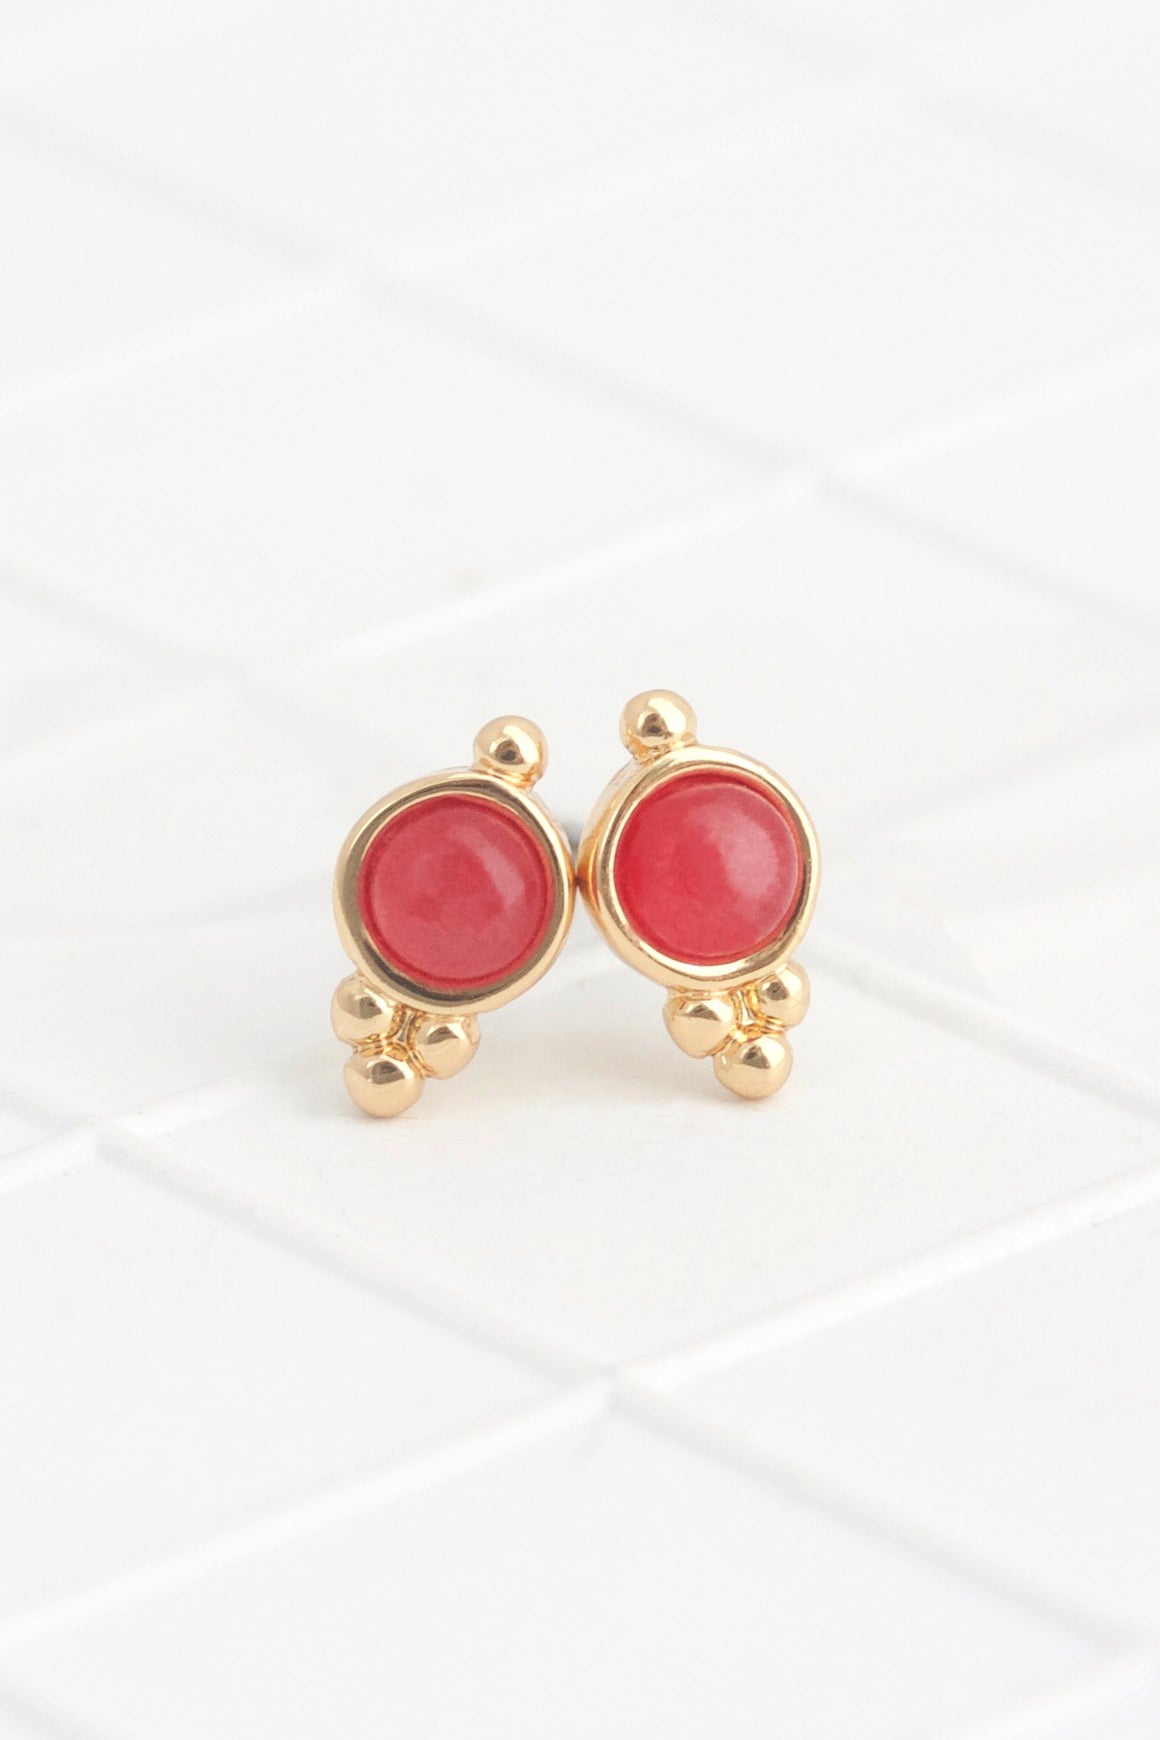 Birthstone Studs July/Ruby